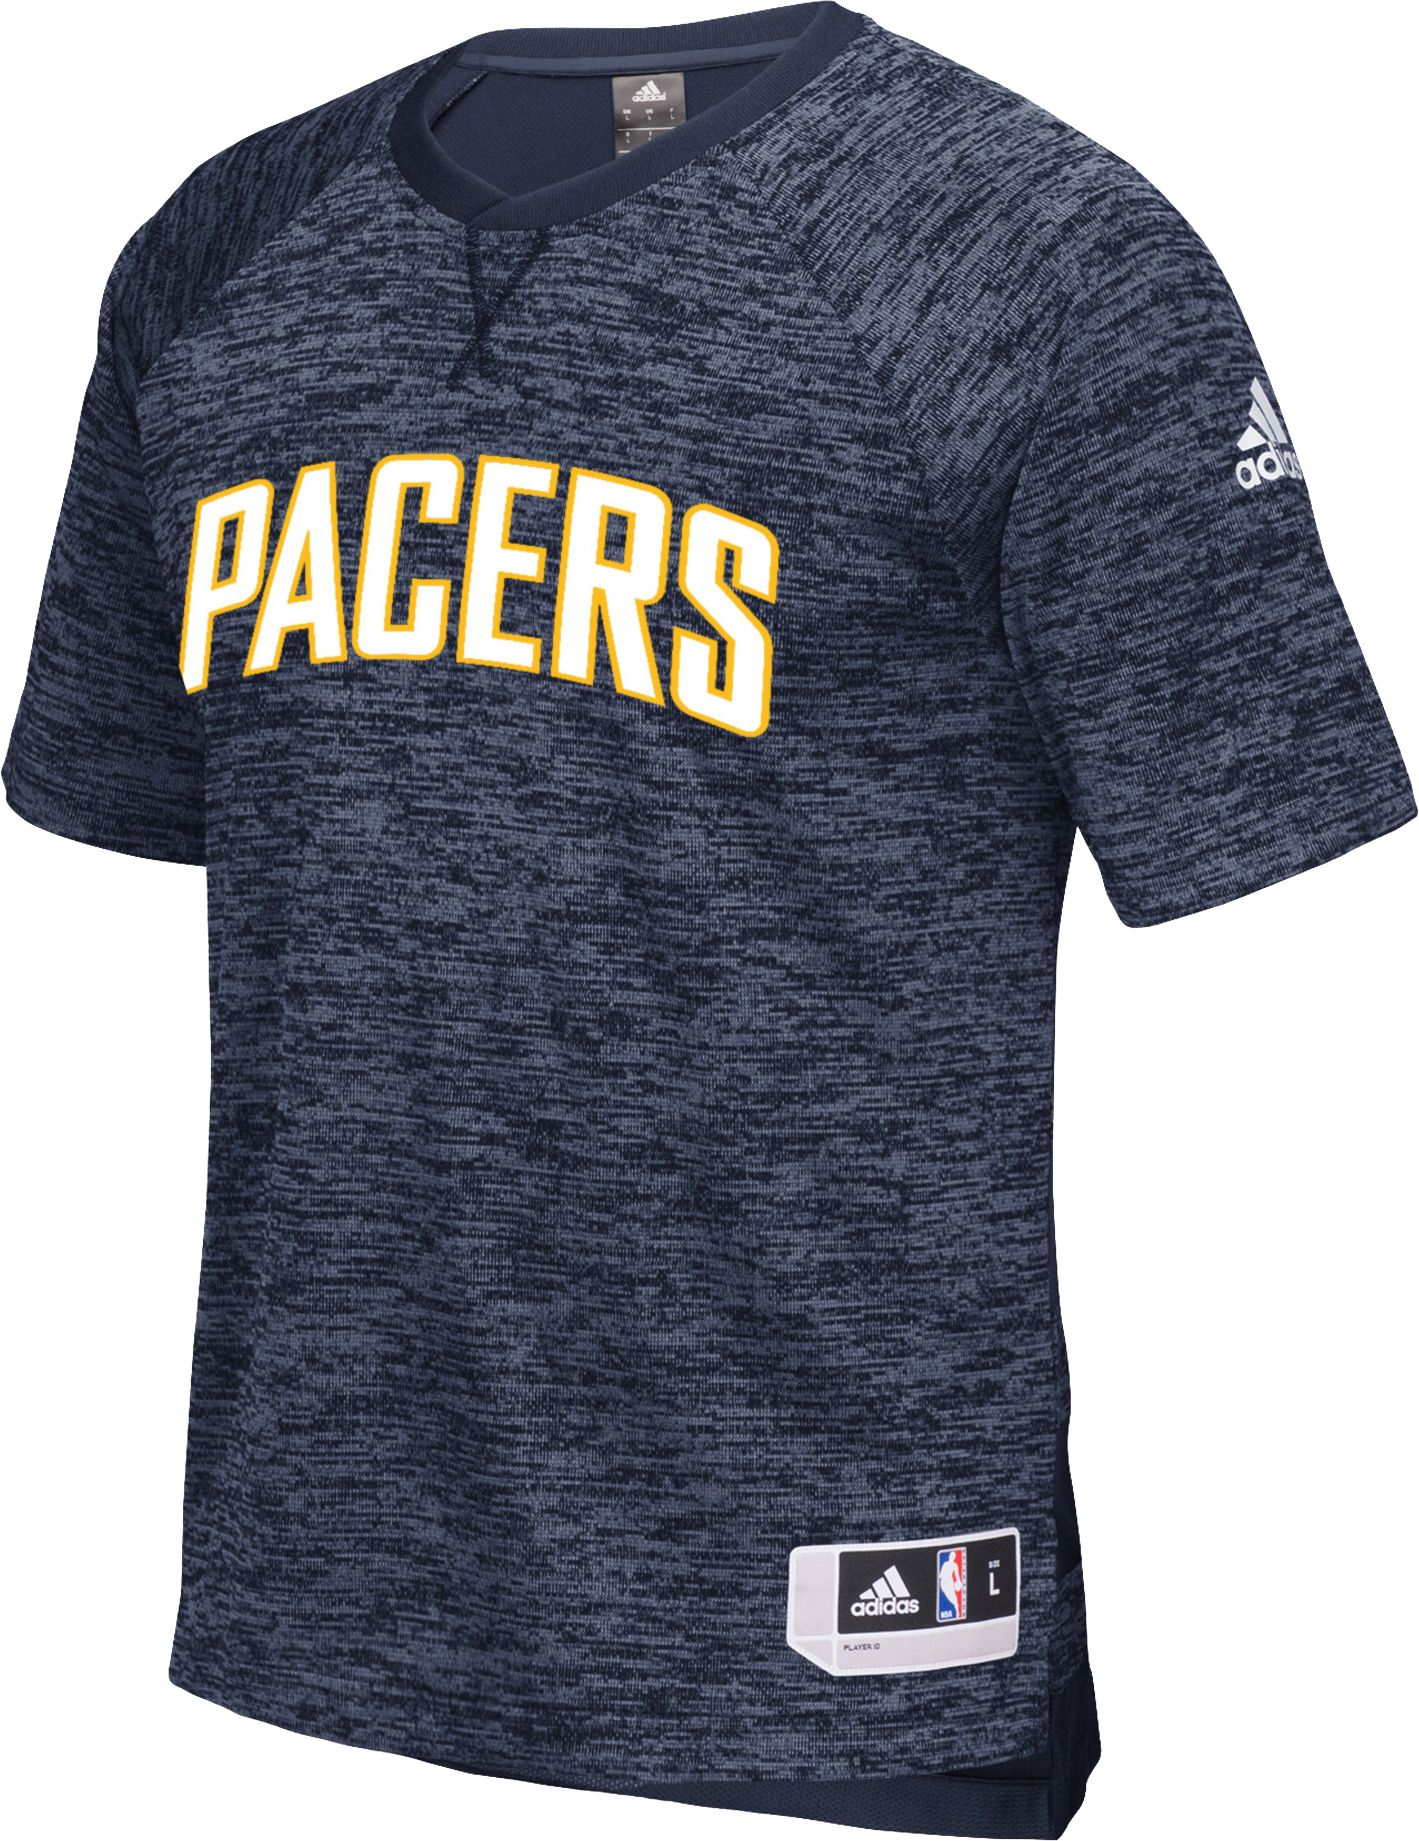 adidas Men's Indiana Pacers On-Court Navy Shooting Shirt, Size: XL, Team thumbnail